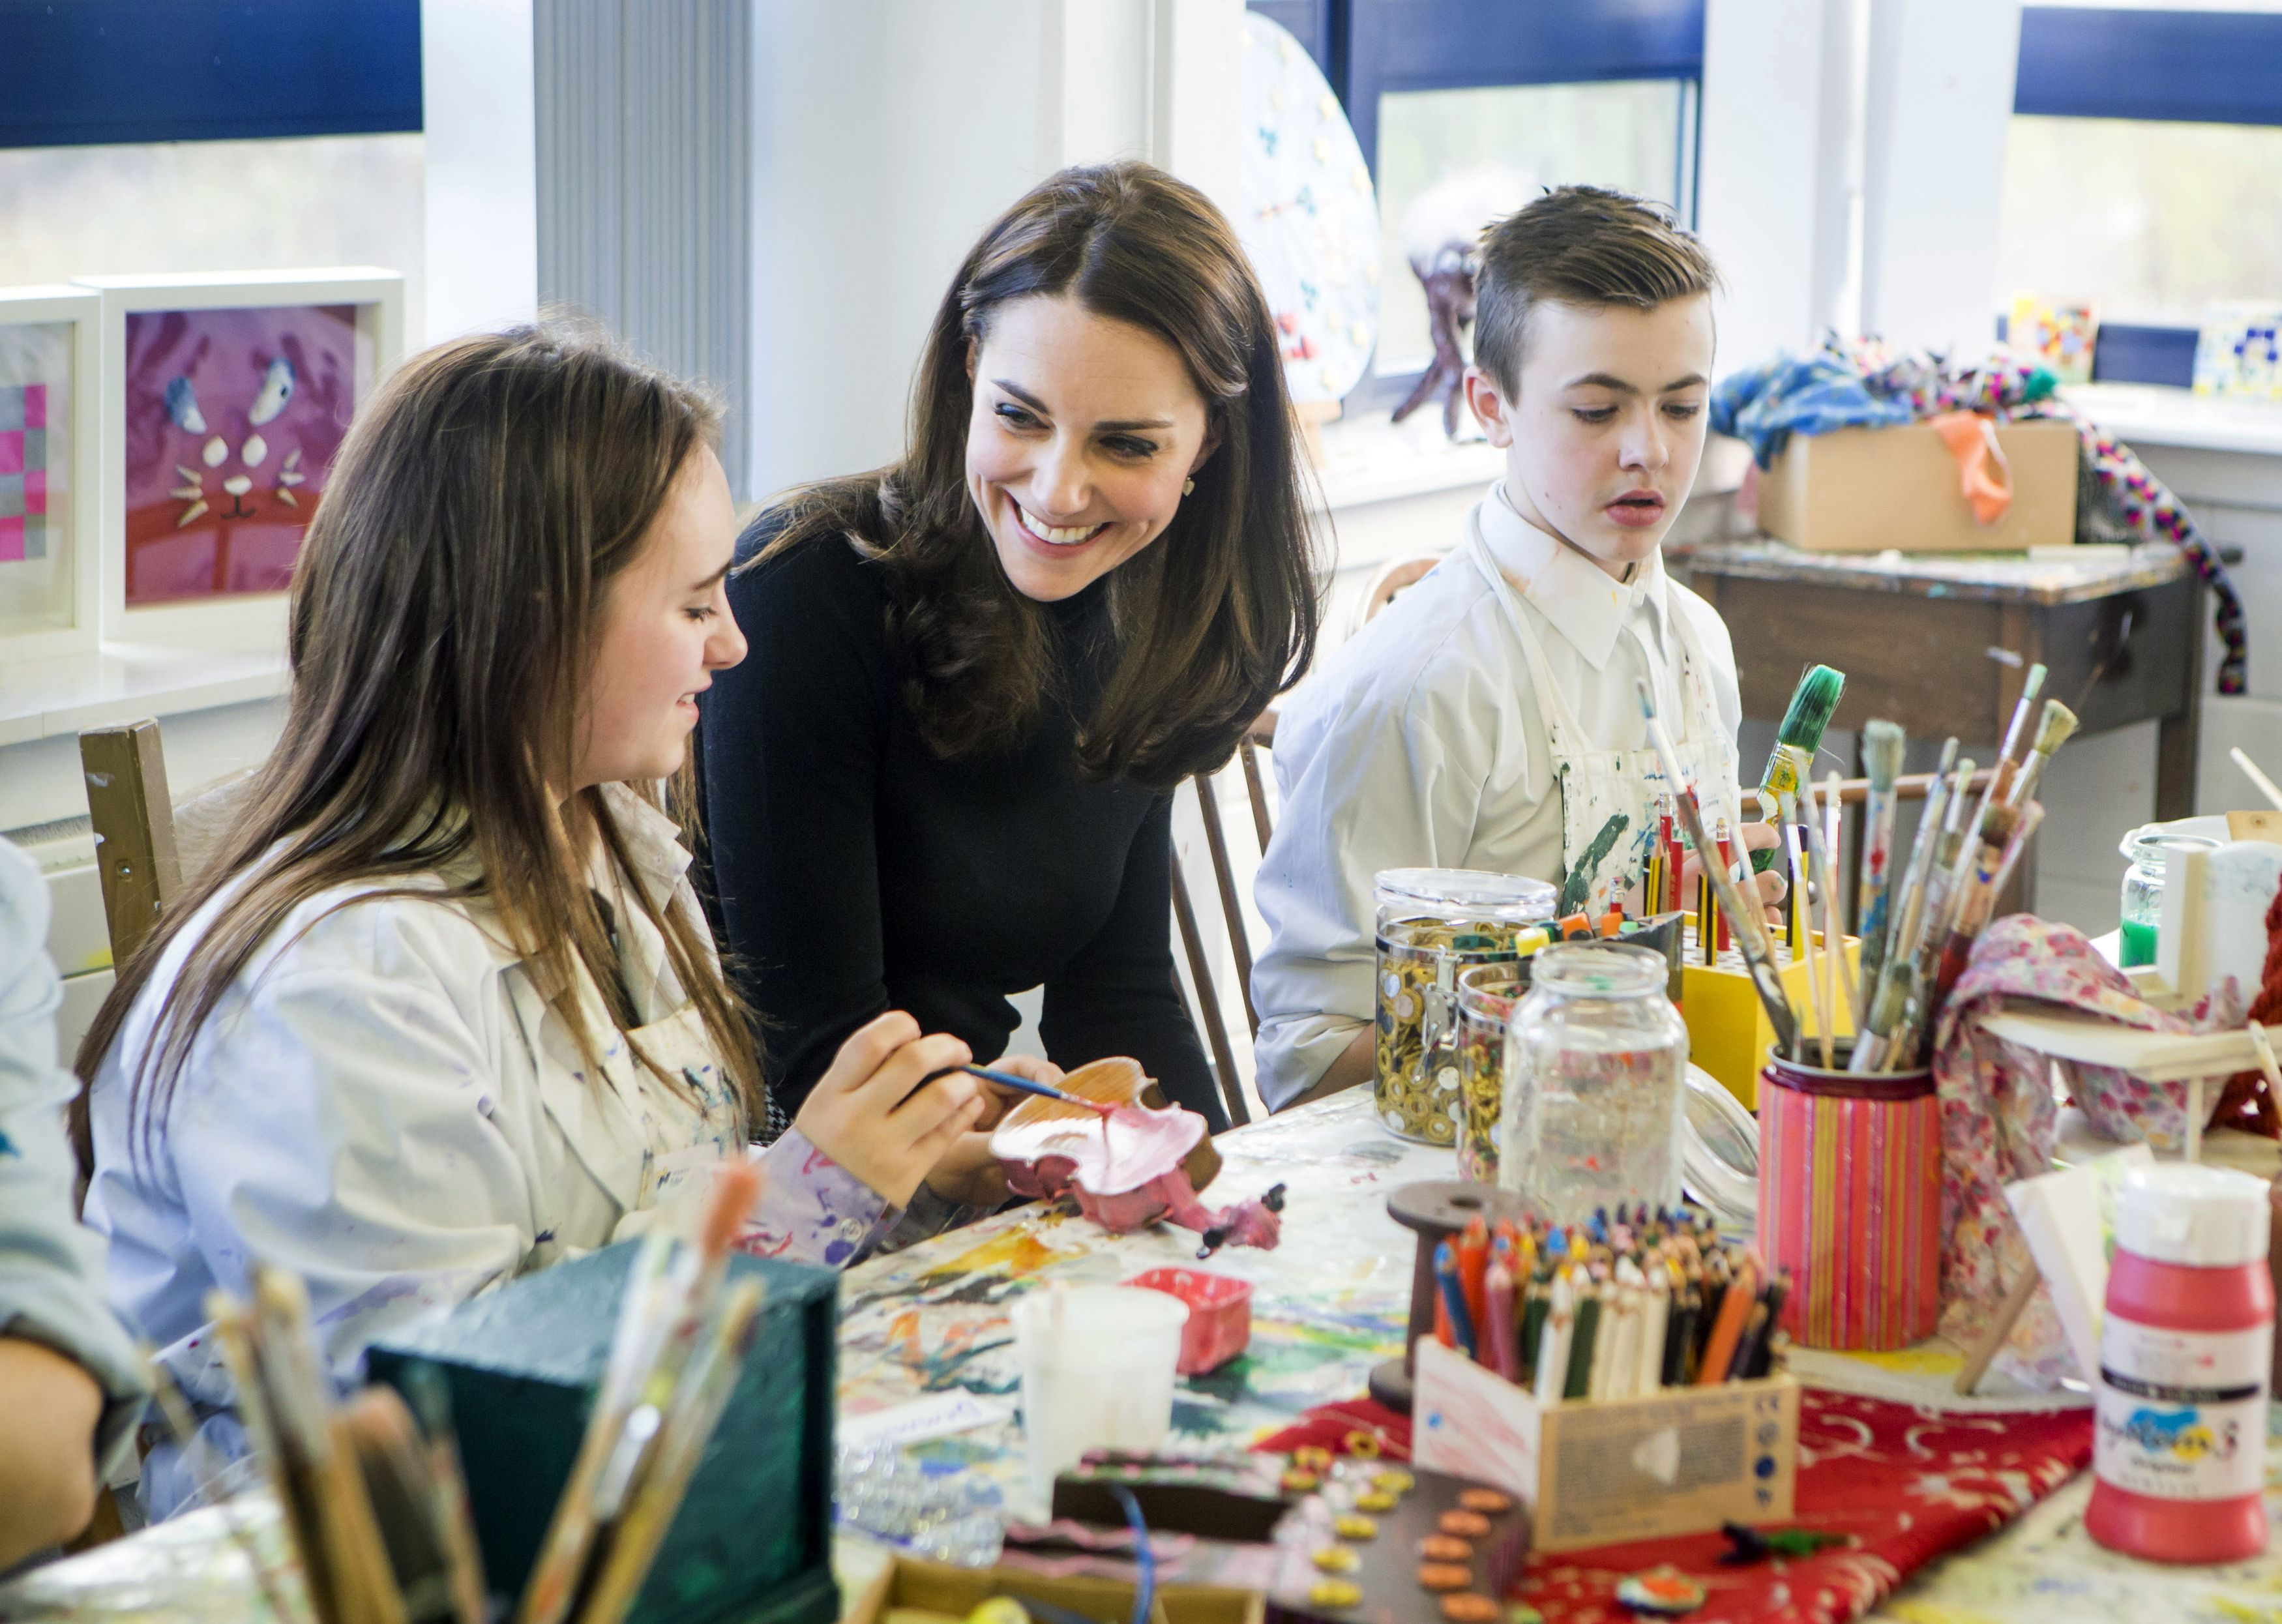 Kate Middleton creating art with students